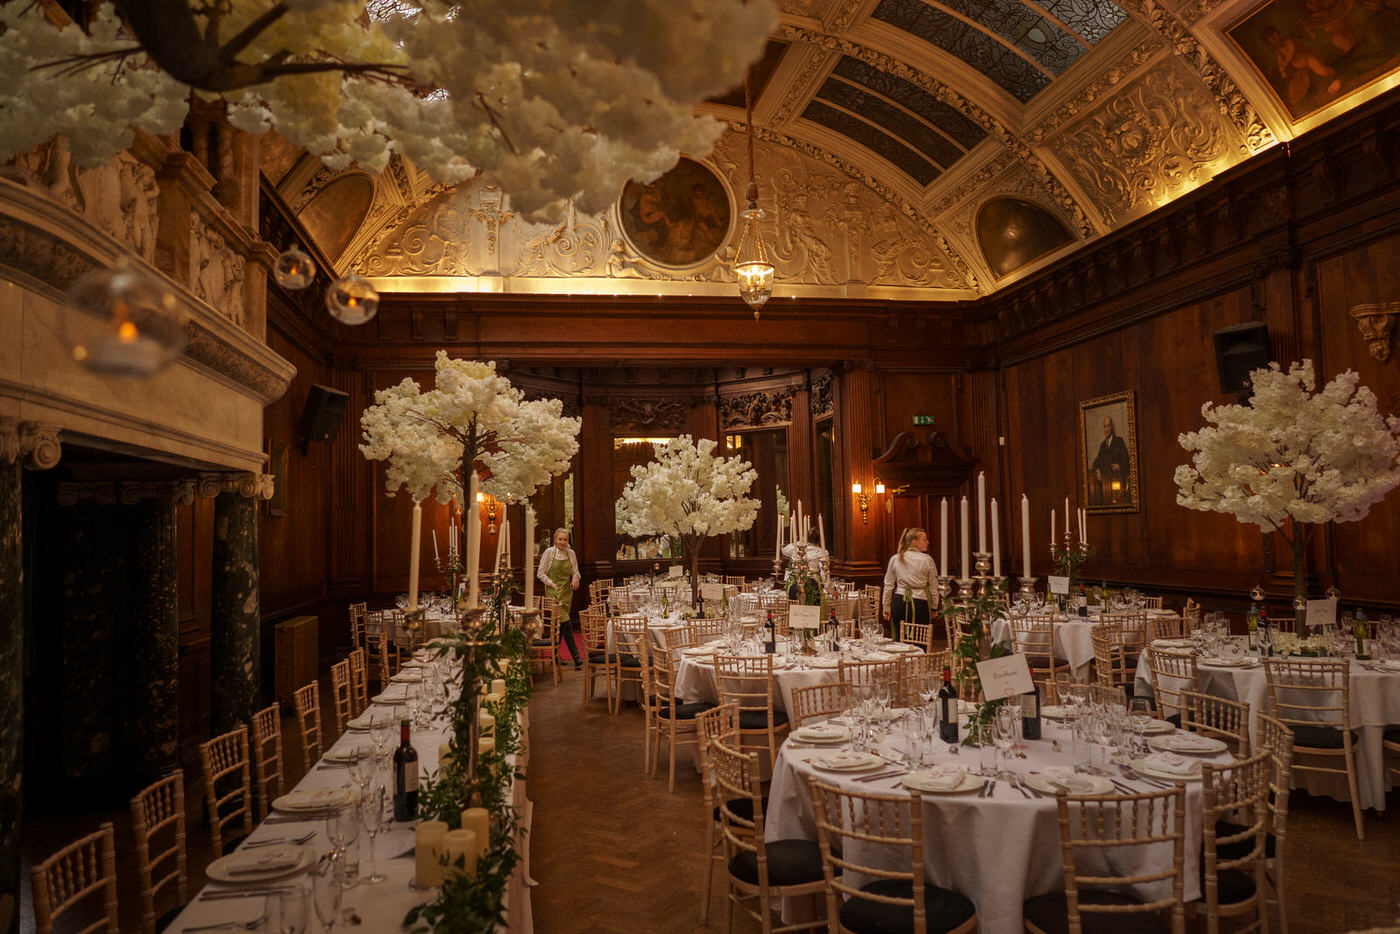 the tables and decorations of the wedding reception at Thornton Manor